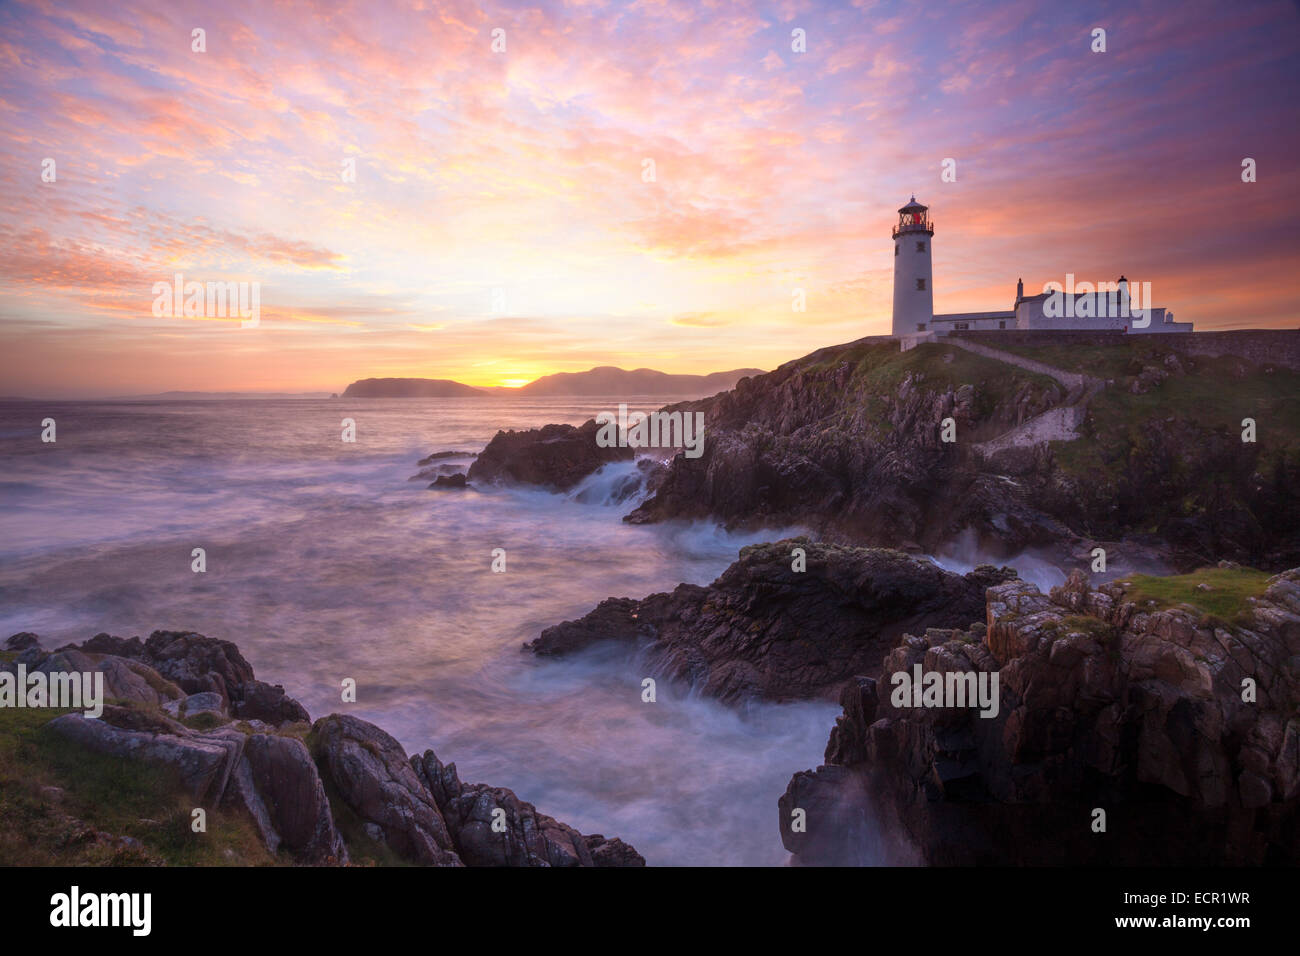 Aube sur Fanad Head Lighthouse, Fanad Head, comté de Donegal, Irlande. Photo Stock